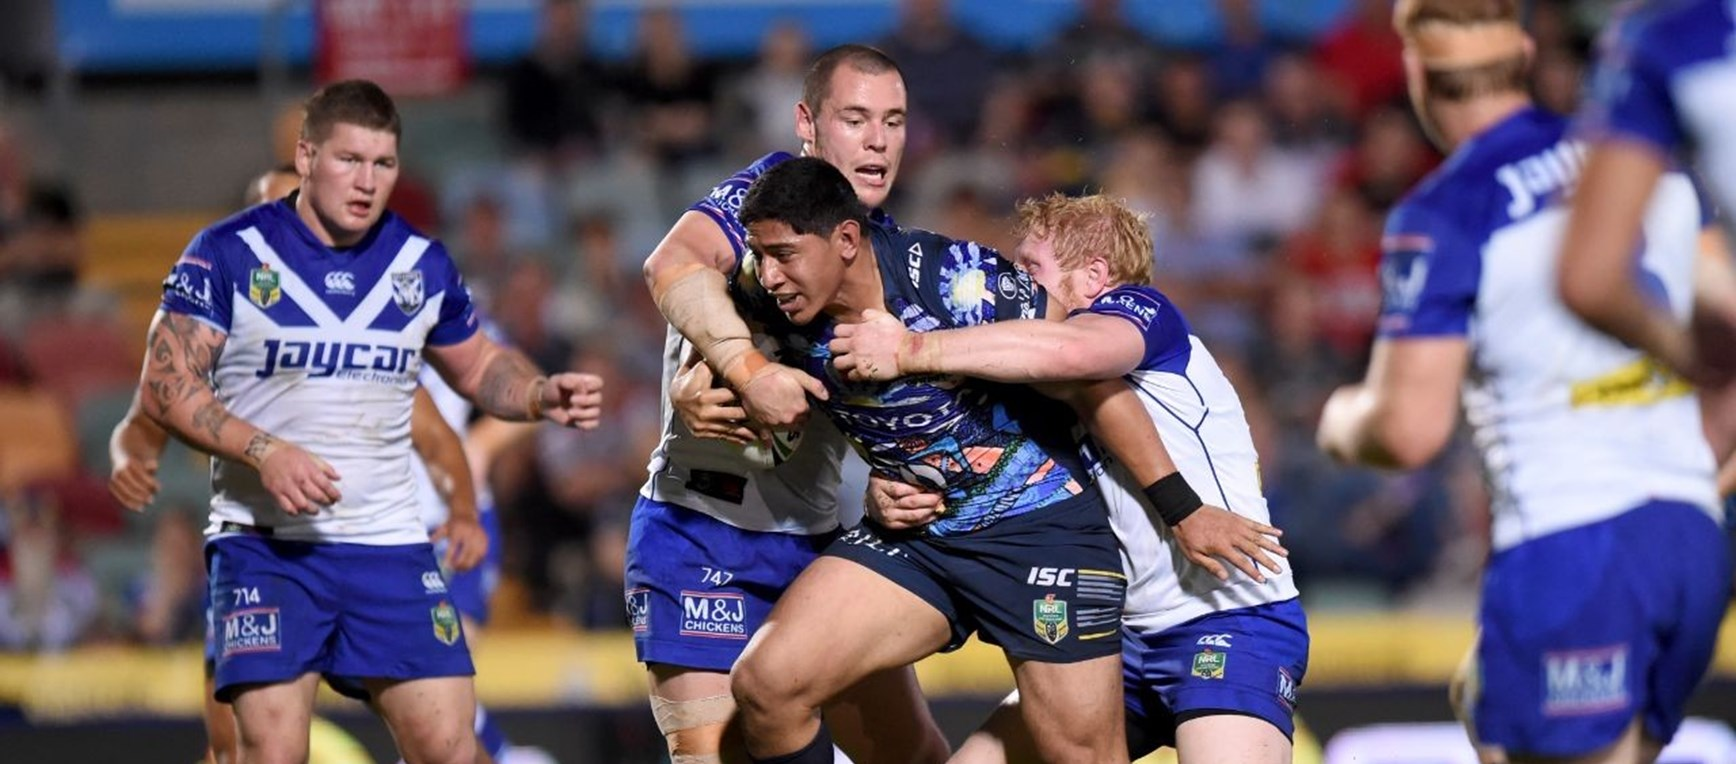 Match gallery | Rd 20 v Bulldogs